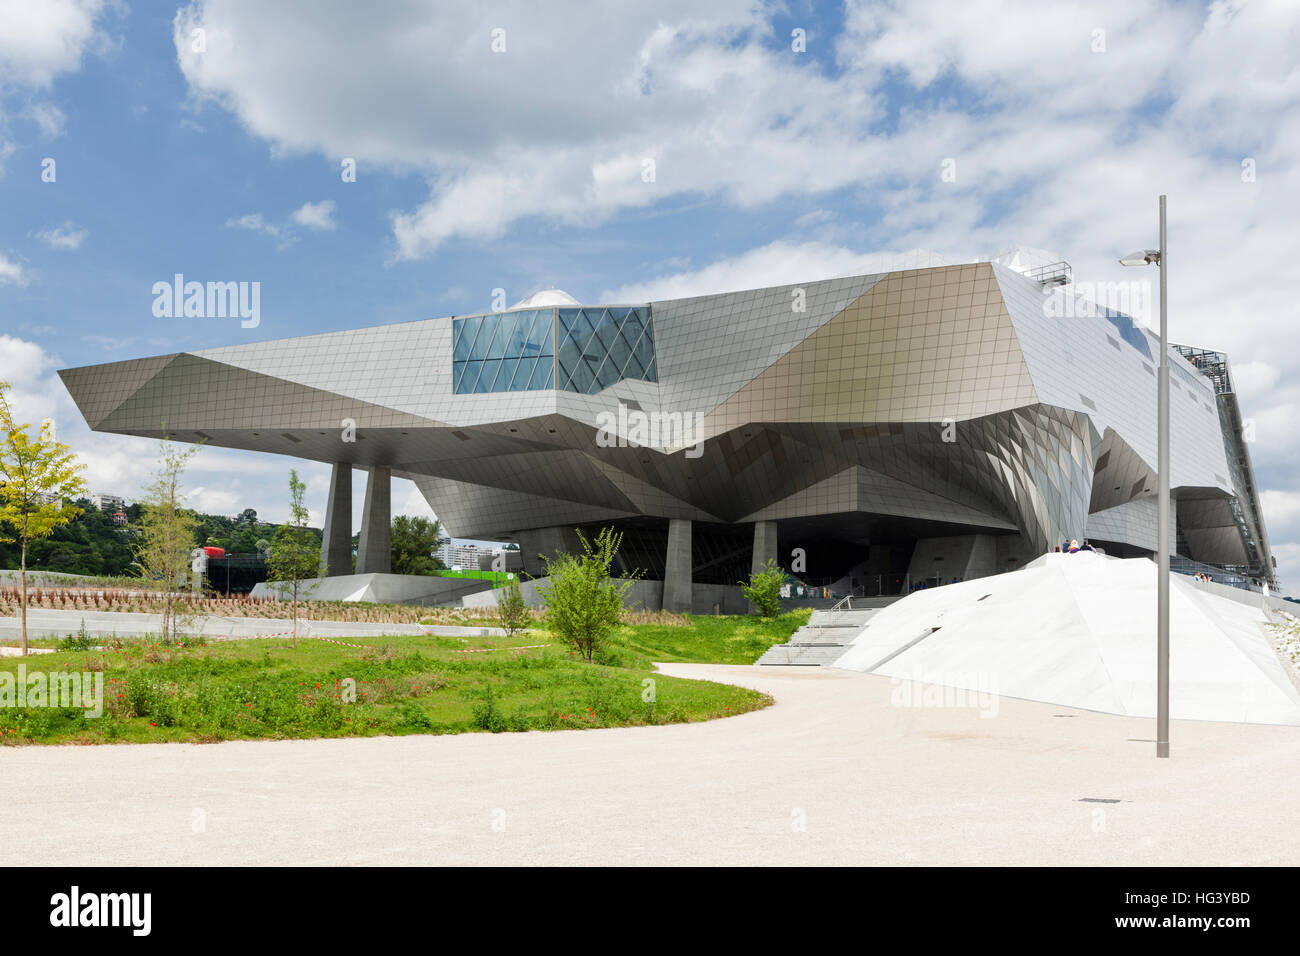 The spacecraft-like Musee des Confluences in Lyon, France. - Stock Image